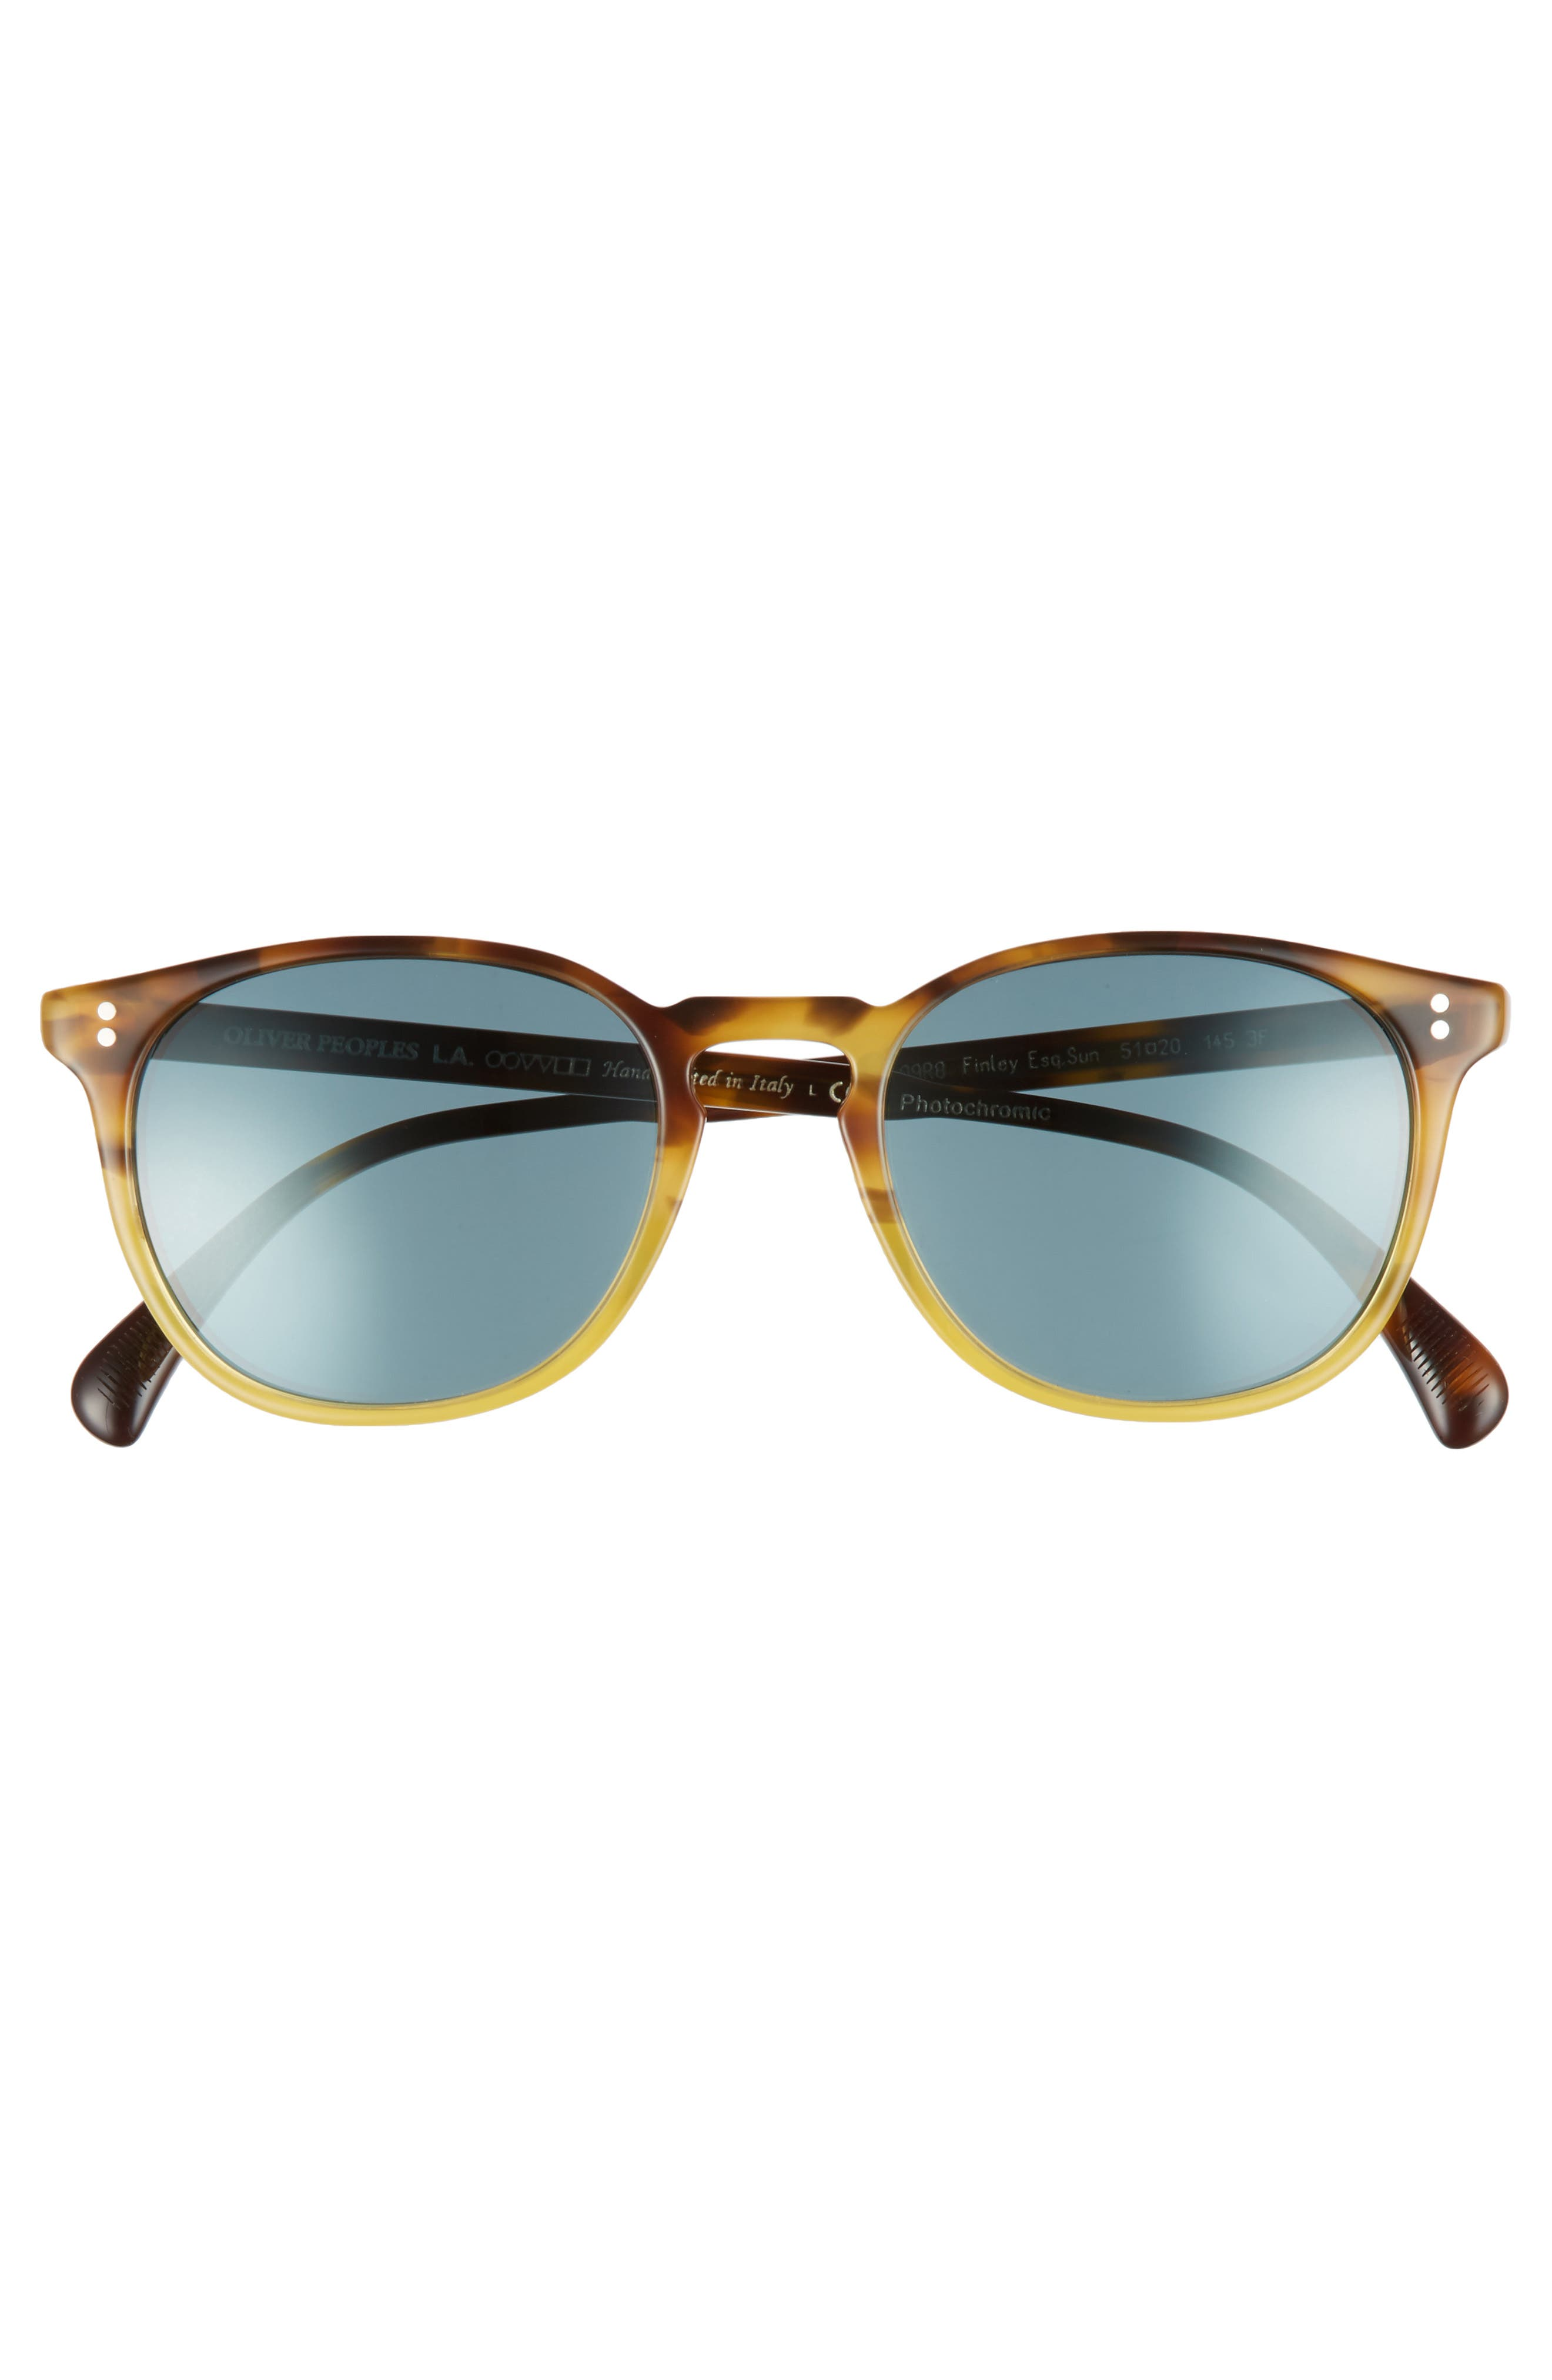 Finley Esq. 51mm Sunglasses,                             Alternate thumbnail 2, color,                             Vbtg